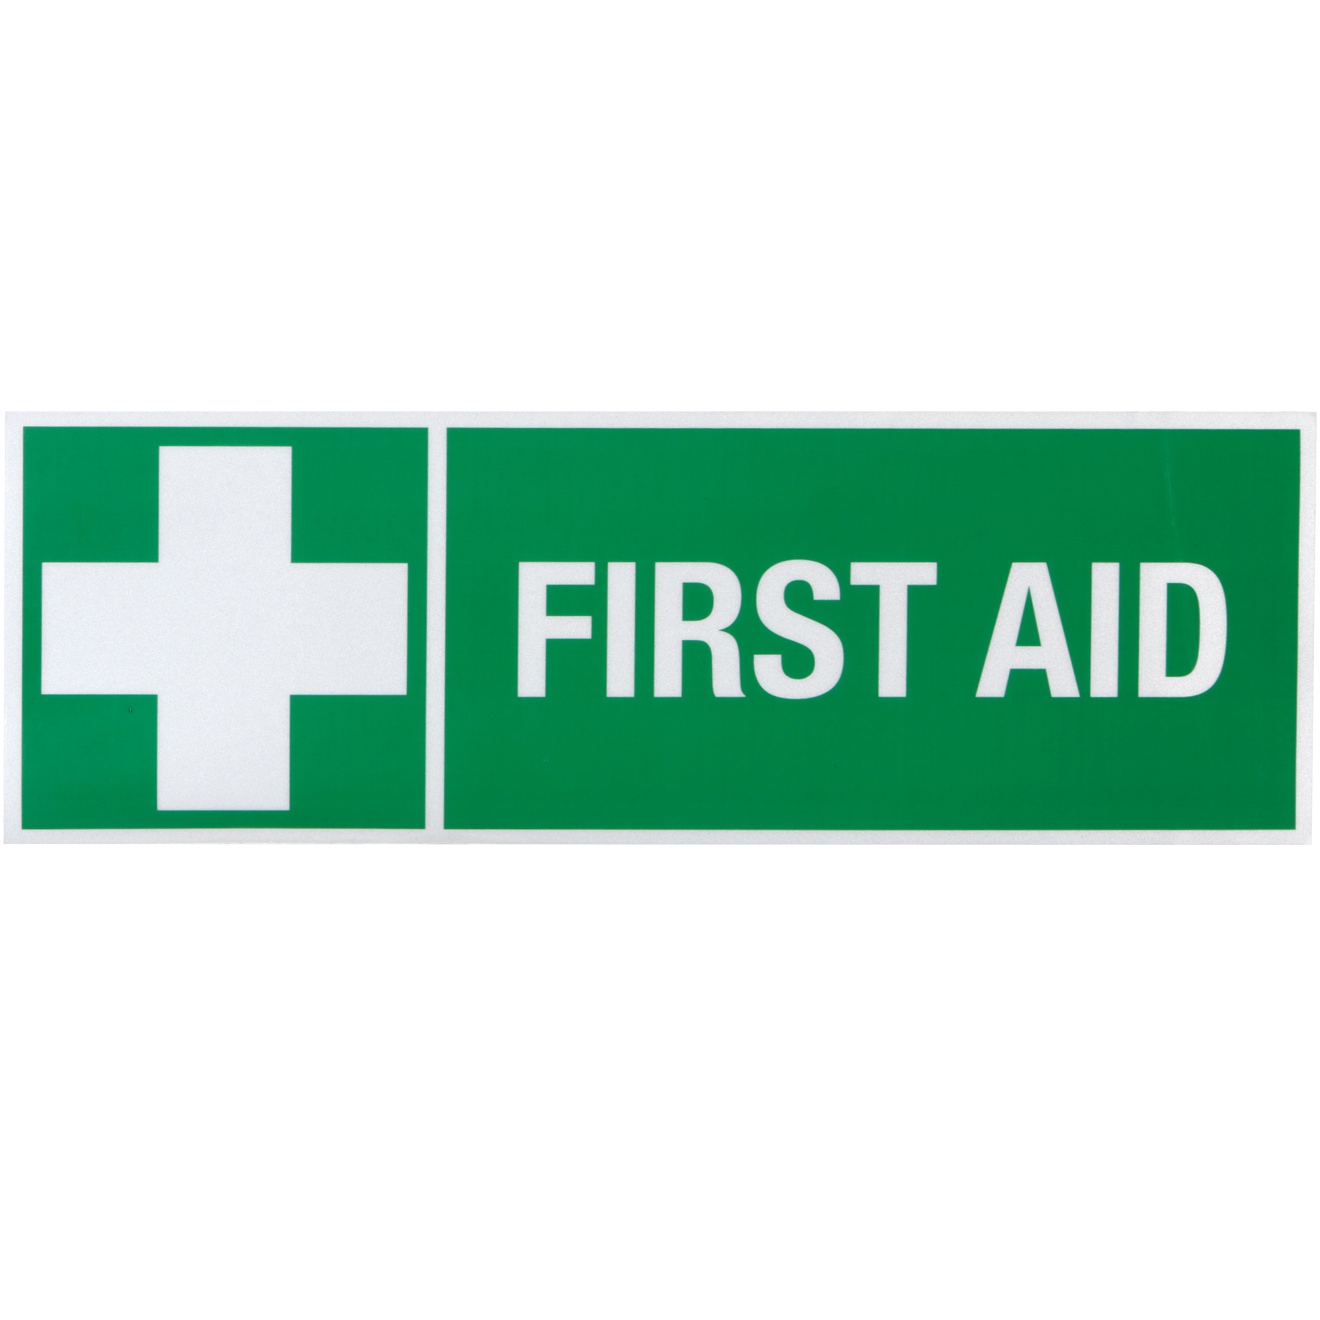 St John Ambulance First Aid - Android Apps on Google Play